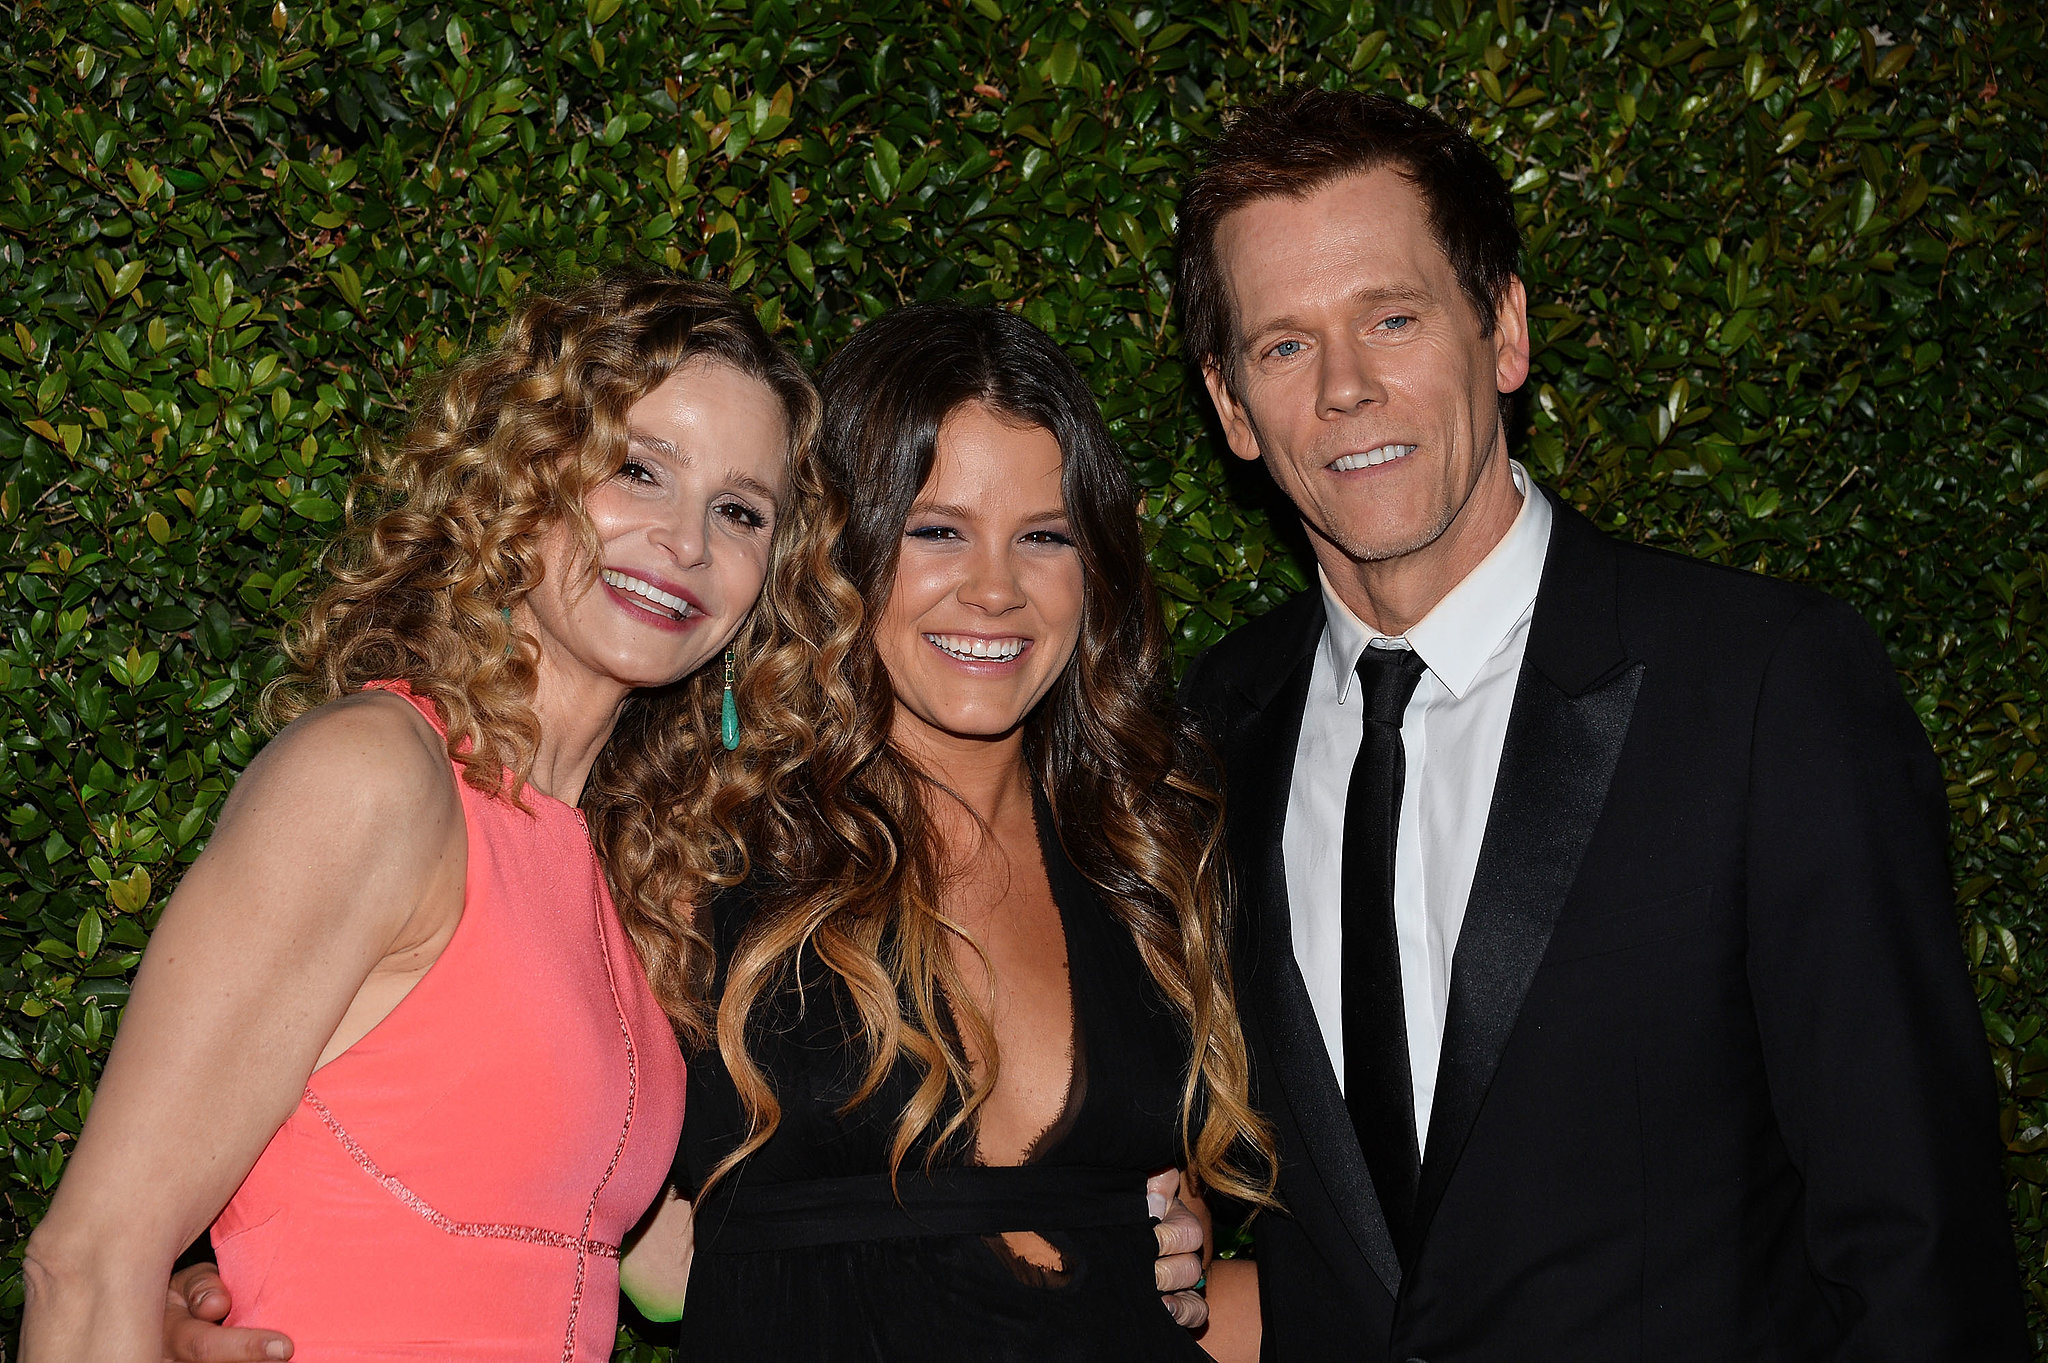 Kevin bacon and his wife kyra sedgwick posed with their for Kevin bacon and kyra sedgwick news